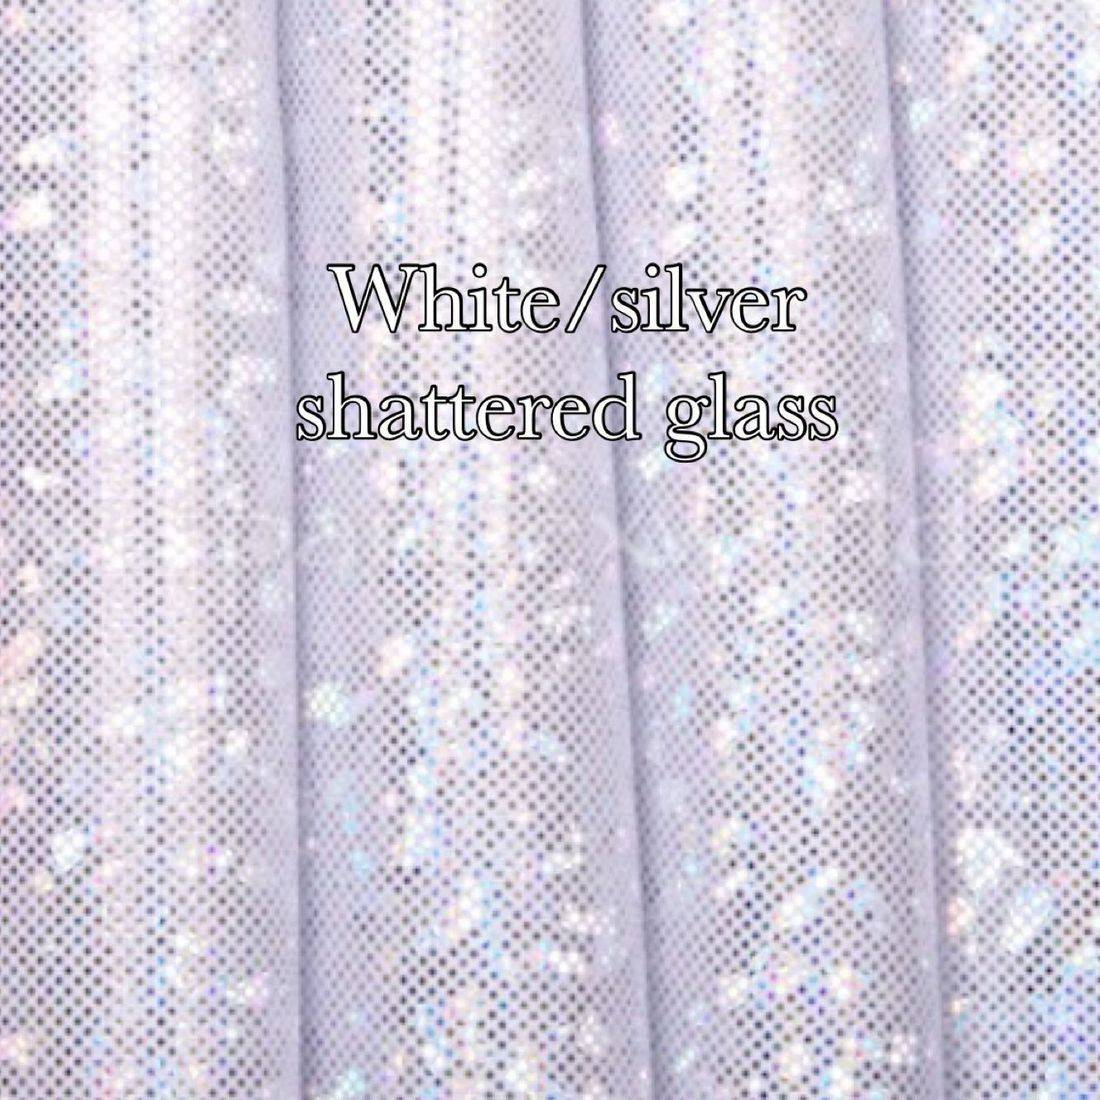 White silver shattered glass